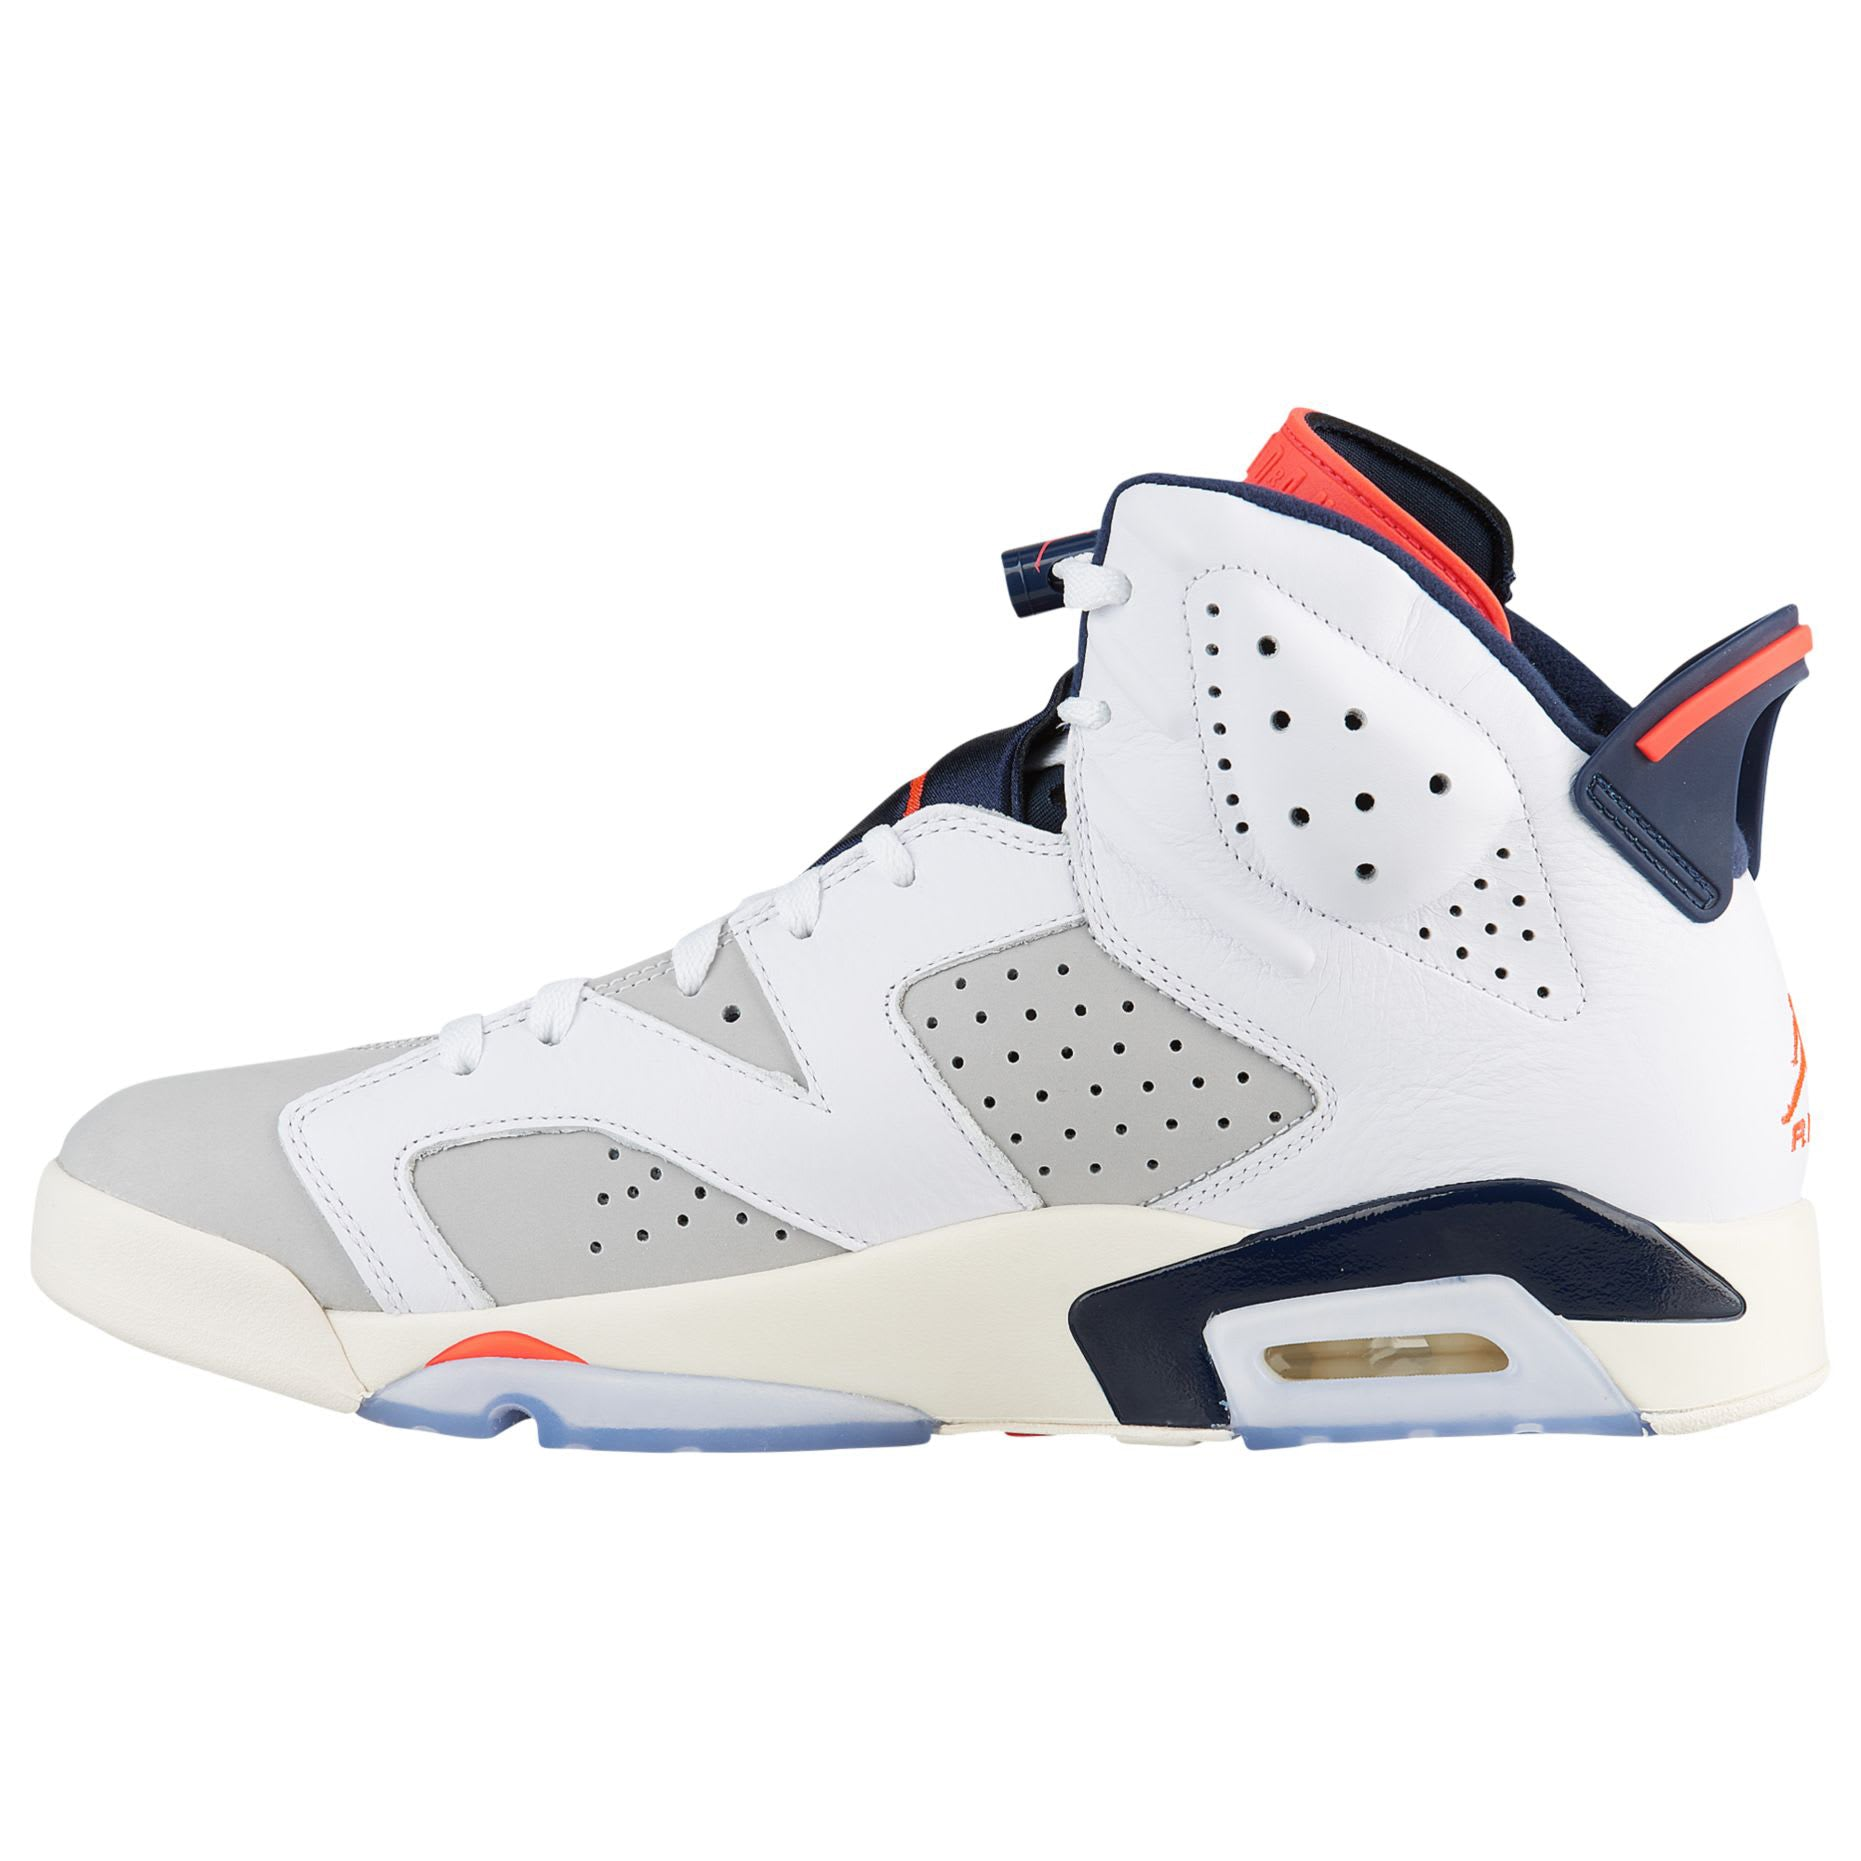 premium selection 1a68c 74700 Nike AIR JORDAN 6 RETRO WHITE/INFRARED 23-NEUTRAL GREY-WHITE (384664-104)